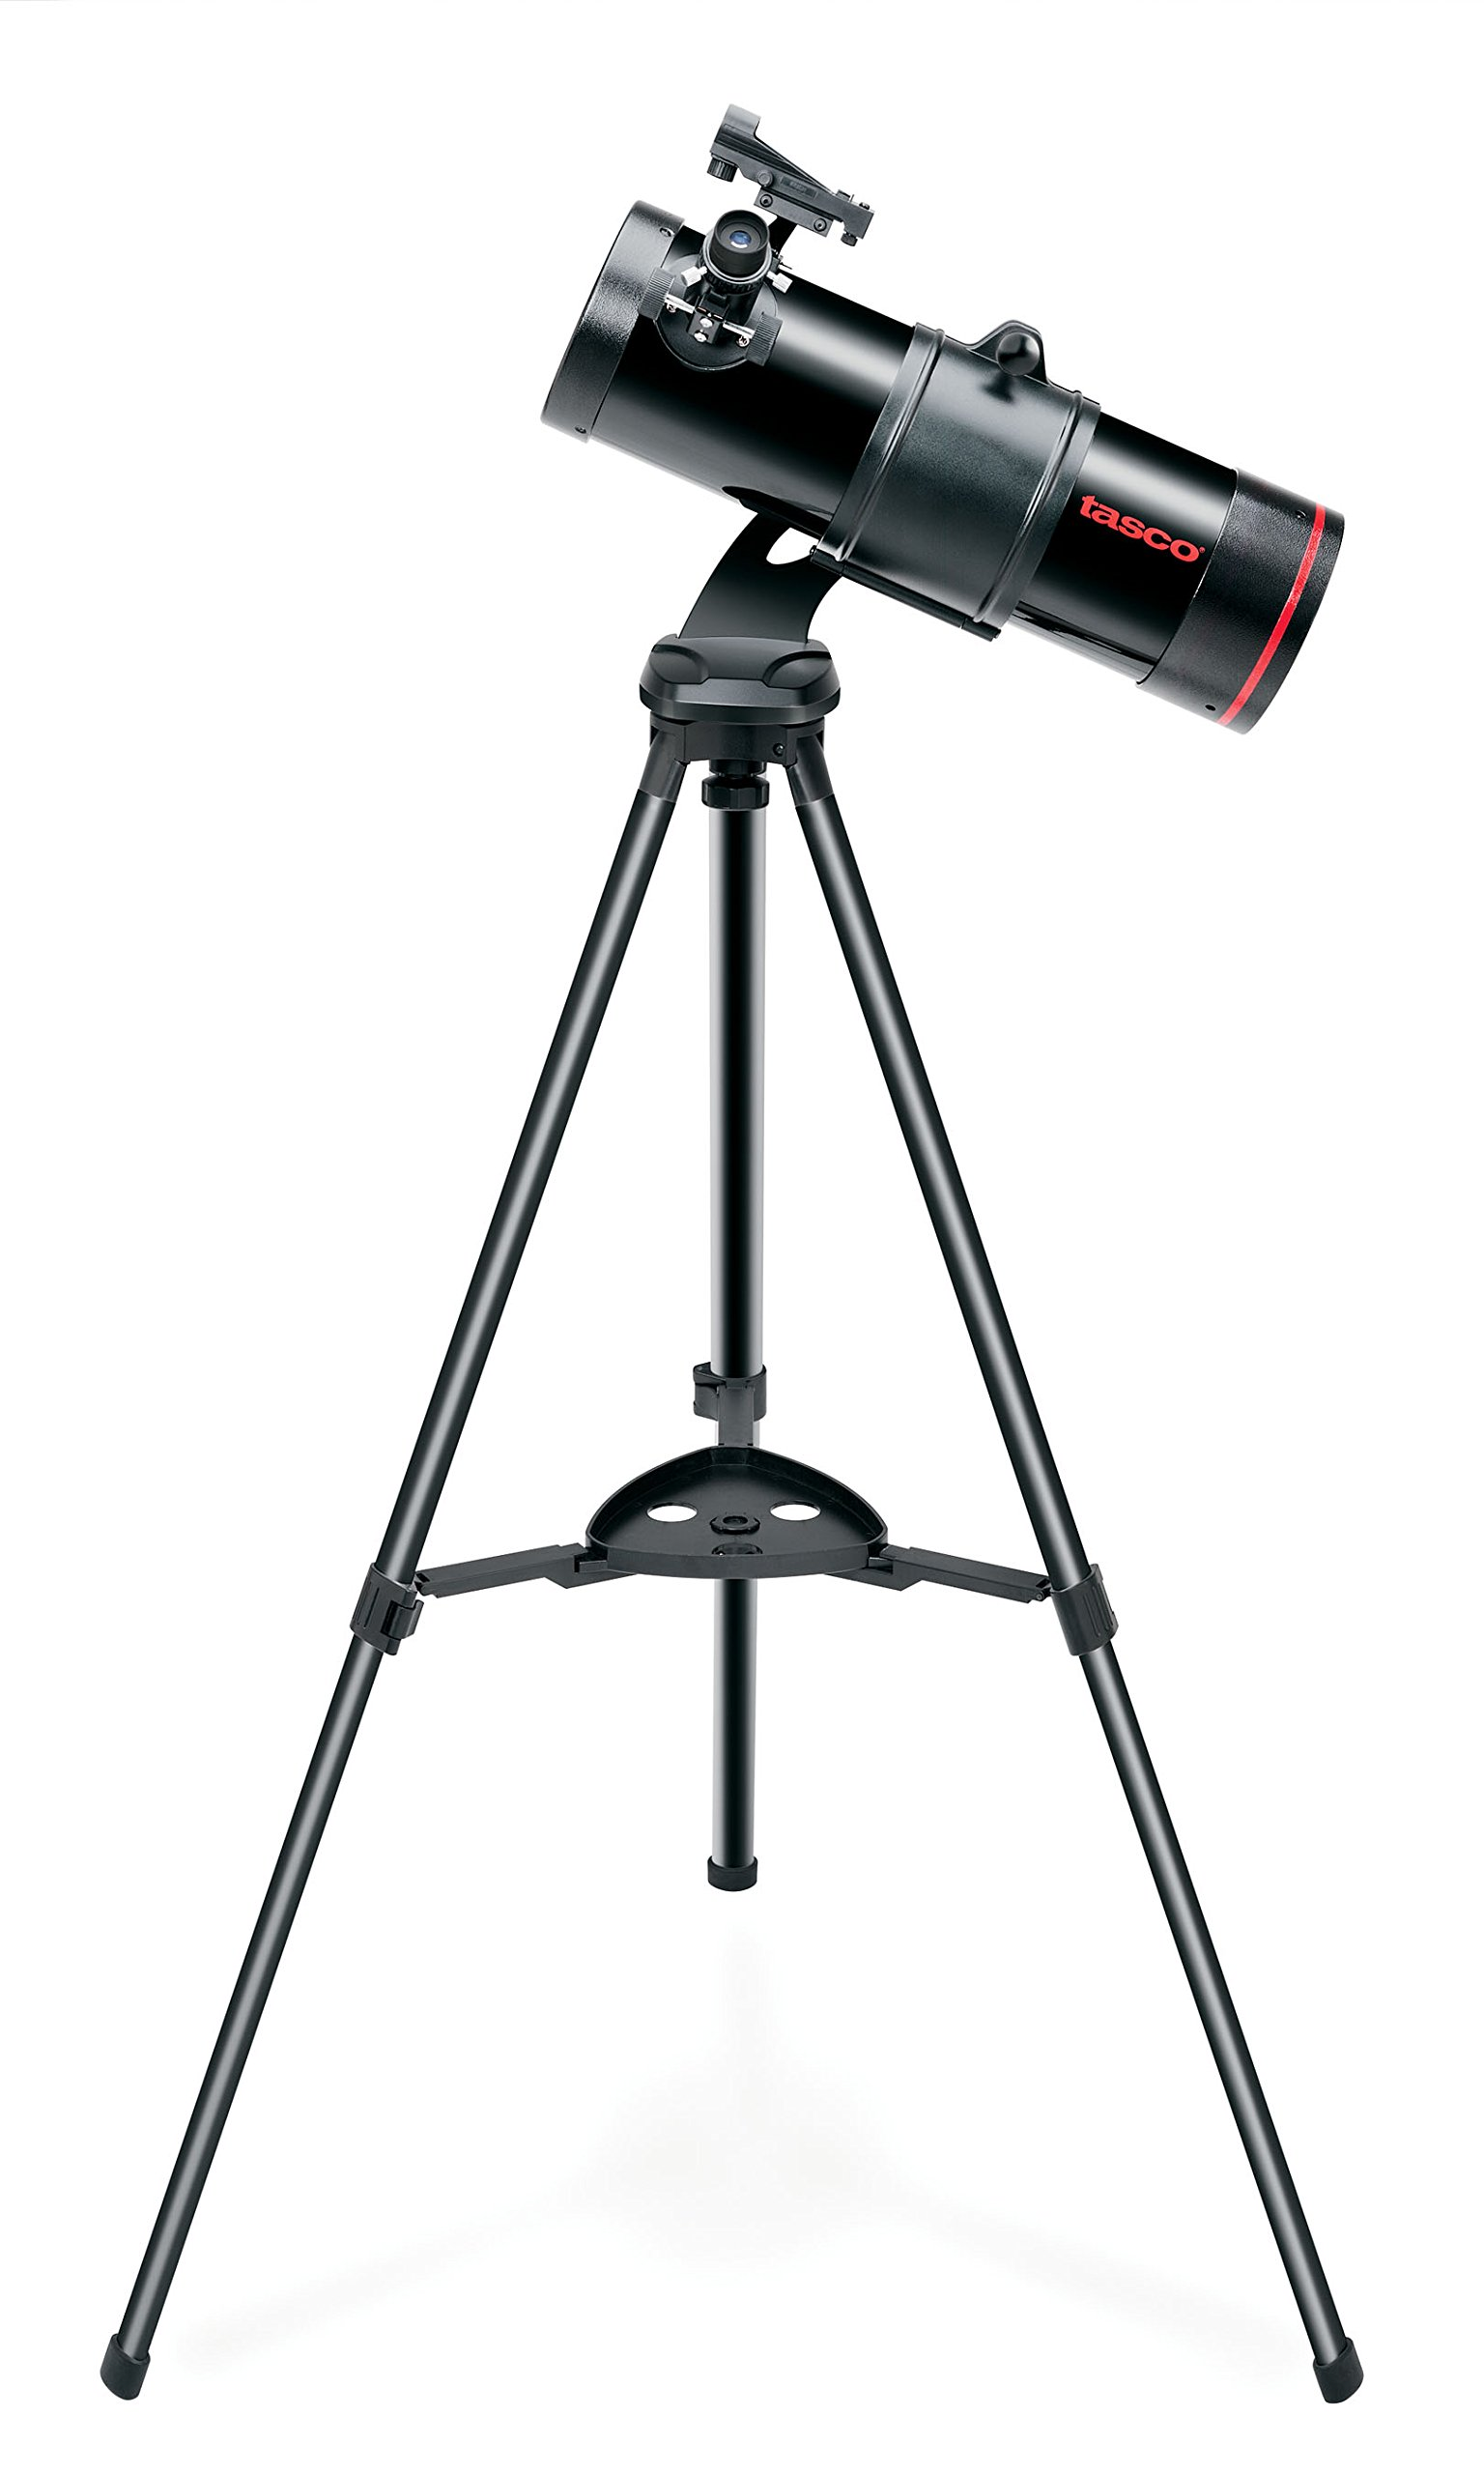 Tasco 49114500 114x500mm Spacestation Black St Red Dot Finderscope by TASCO